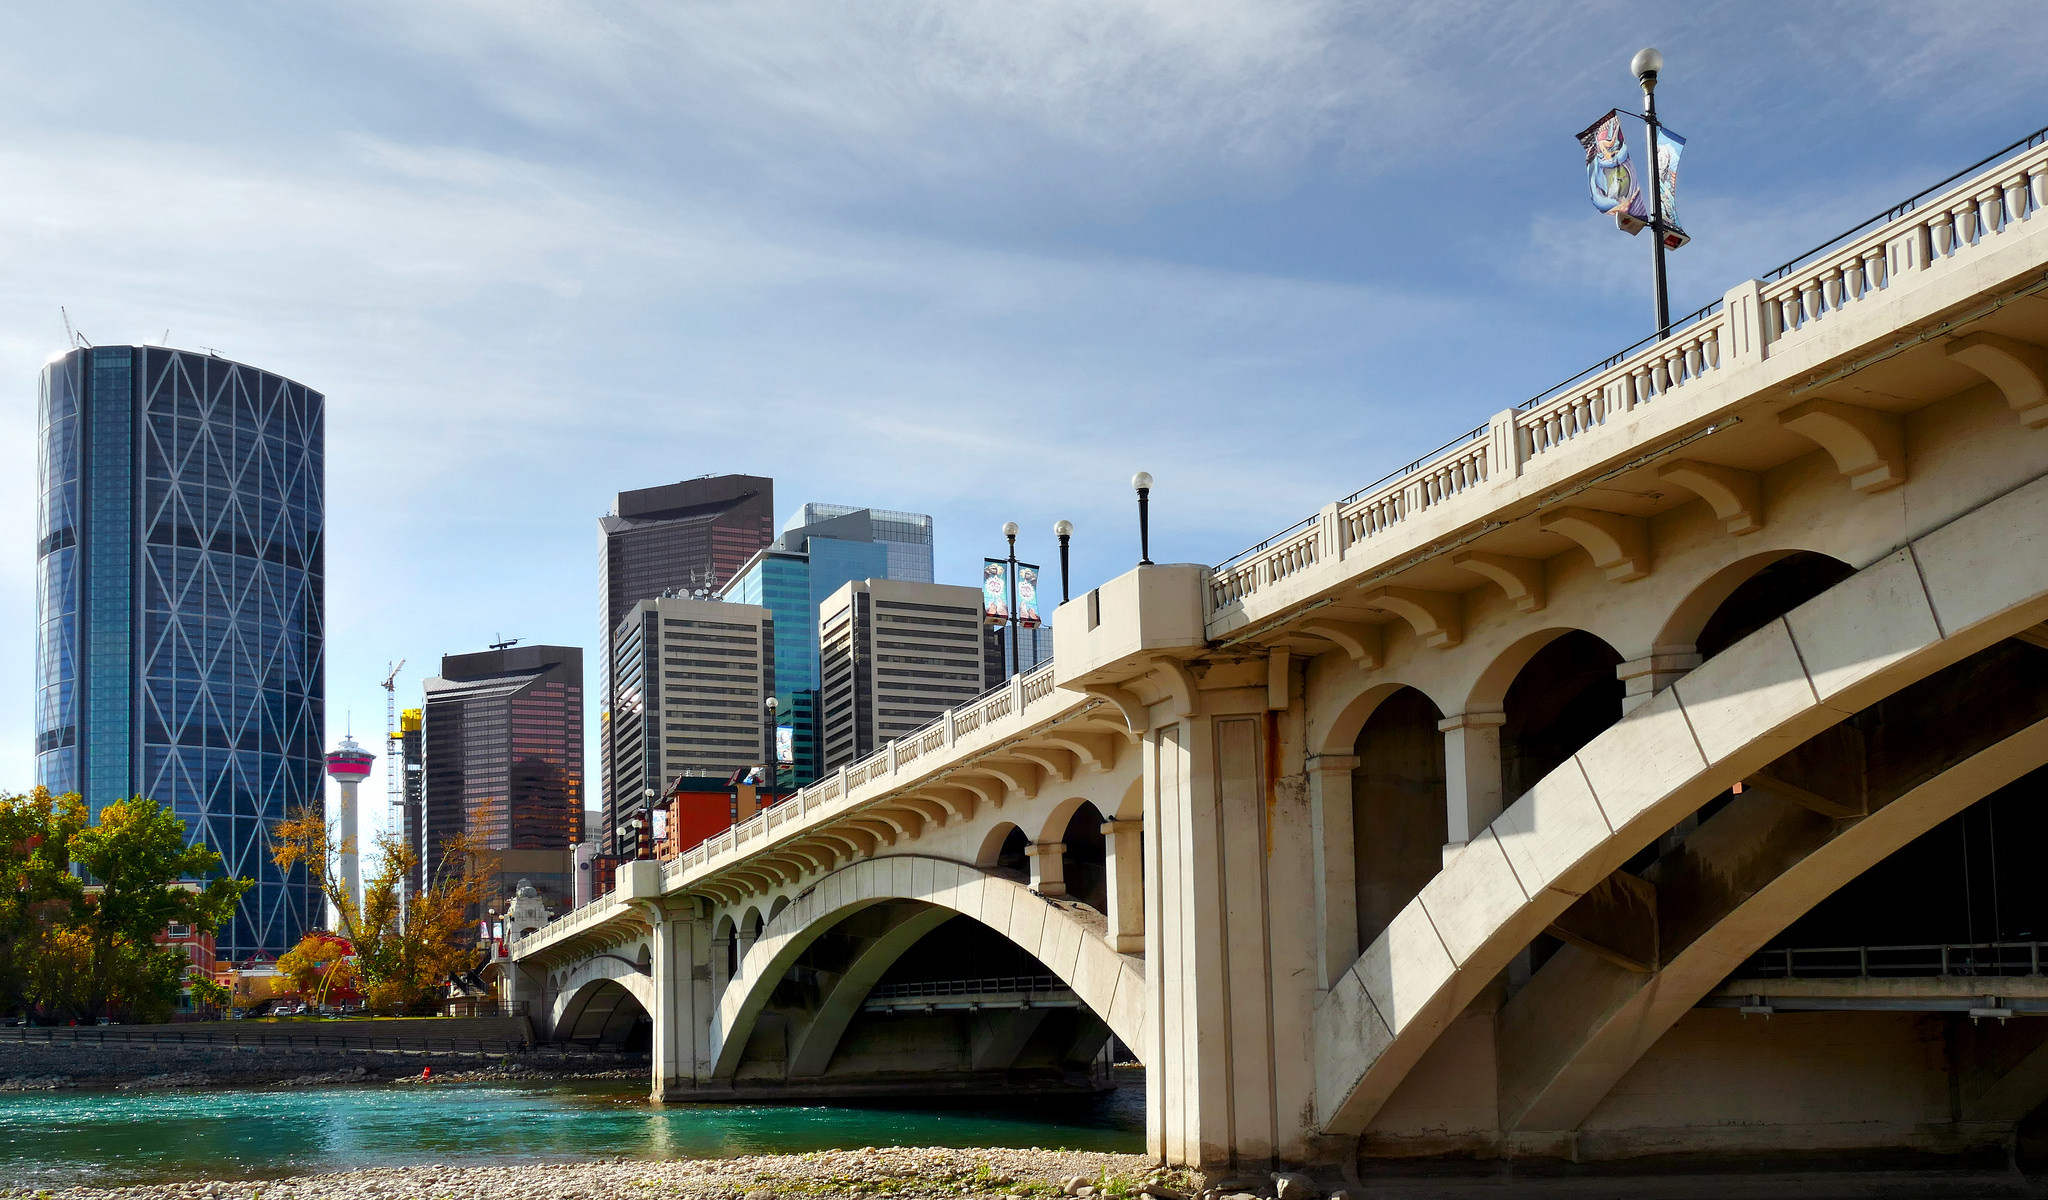 Centre Street Bridge,Calgary: Bernard Spragg: Public Domain: https://www.flickr.com/photos/volvob12b/37615292250/in/photolist-ZiWcTy-eYu1AL-39gkX-92kYFW-fkDNRa-eT8Hei-n5kC6H-n5c23F-oCzMcU-hfqH11-fjnH9V-qfhA6H-nFMRg9-mtJJ5Z-8bwirE-geaXKf-nY1mnT-nADdC7-dhXxHh-21TYmeQ-nrk3iv-fGek3W-gczK2T-jqAwb8-nEyHYw-hC5PwK-jr3h7W-dhZFnd-dhXENf-nYjrJB-efrxKD-fB8S1v-8Ju1aC-fgsJyW-pkCLFR-8qH1sT-bCT6oJ-efxiku-ffXonb-dhZZmt-fGd1bQ-dhXcts-tVGPqZ-bv9pwP-ntxddM-dhYwXT-nJRAU2-ffHAHV-bRMJXz-8Bwpm4